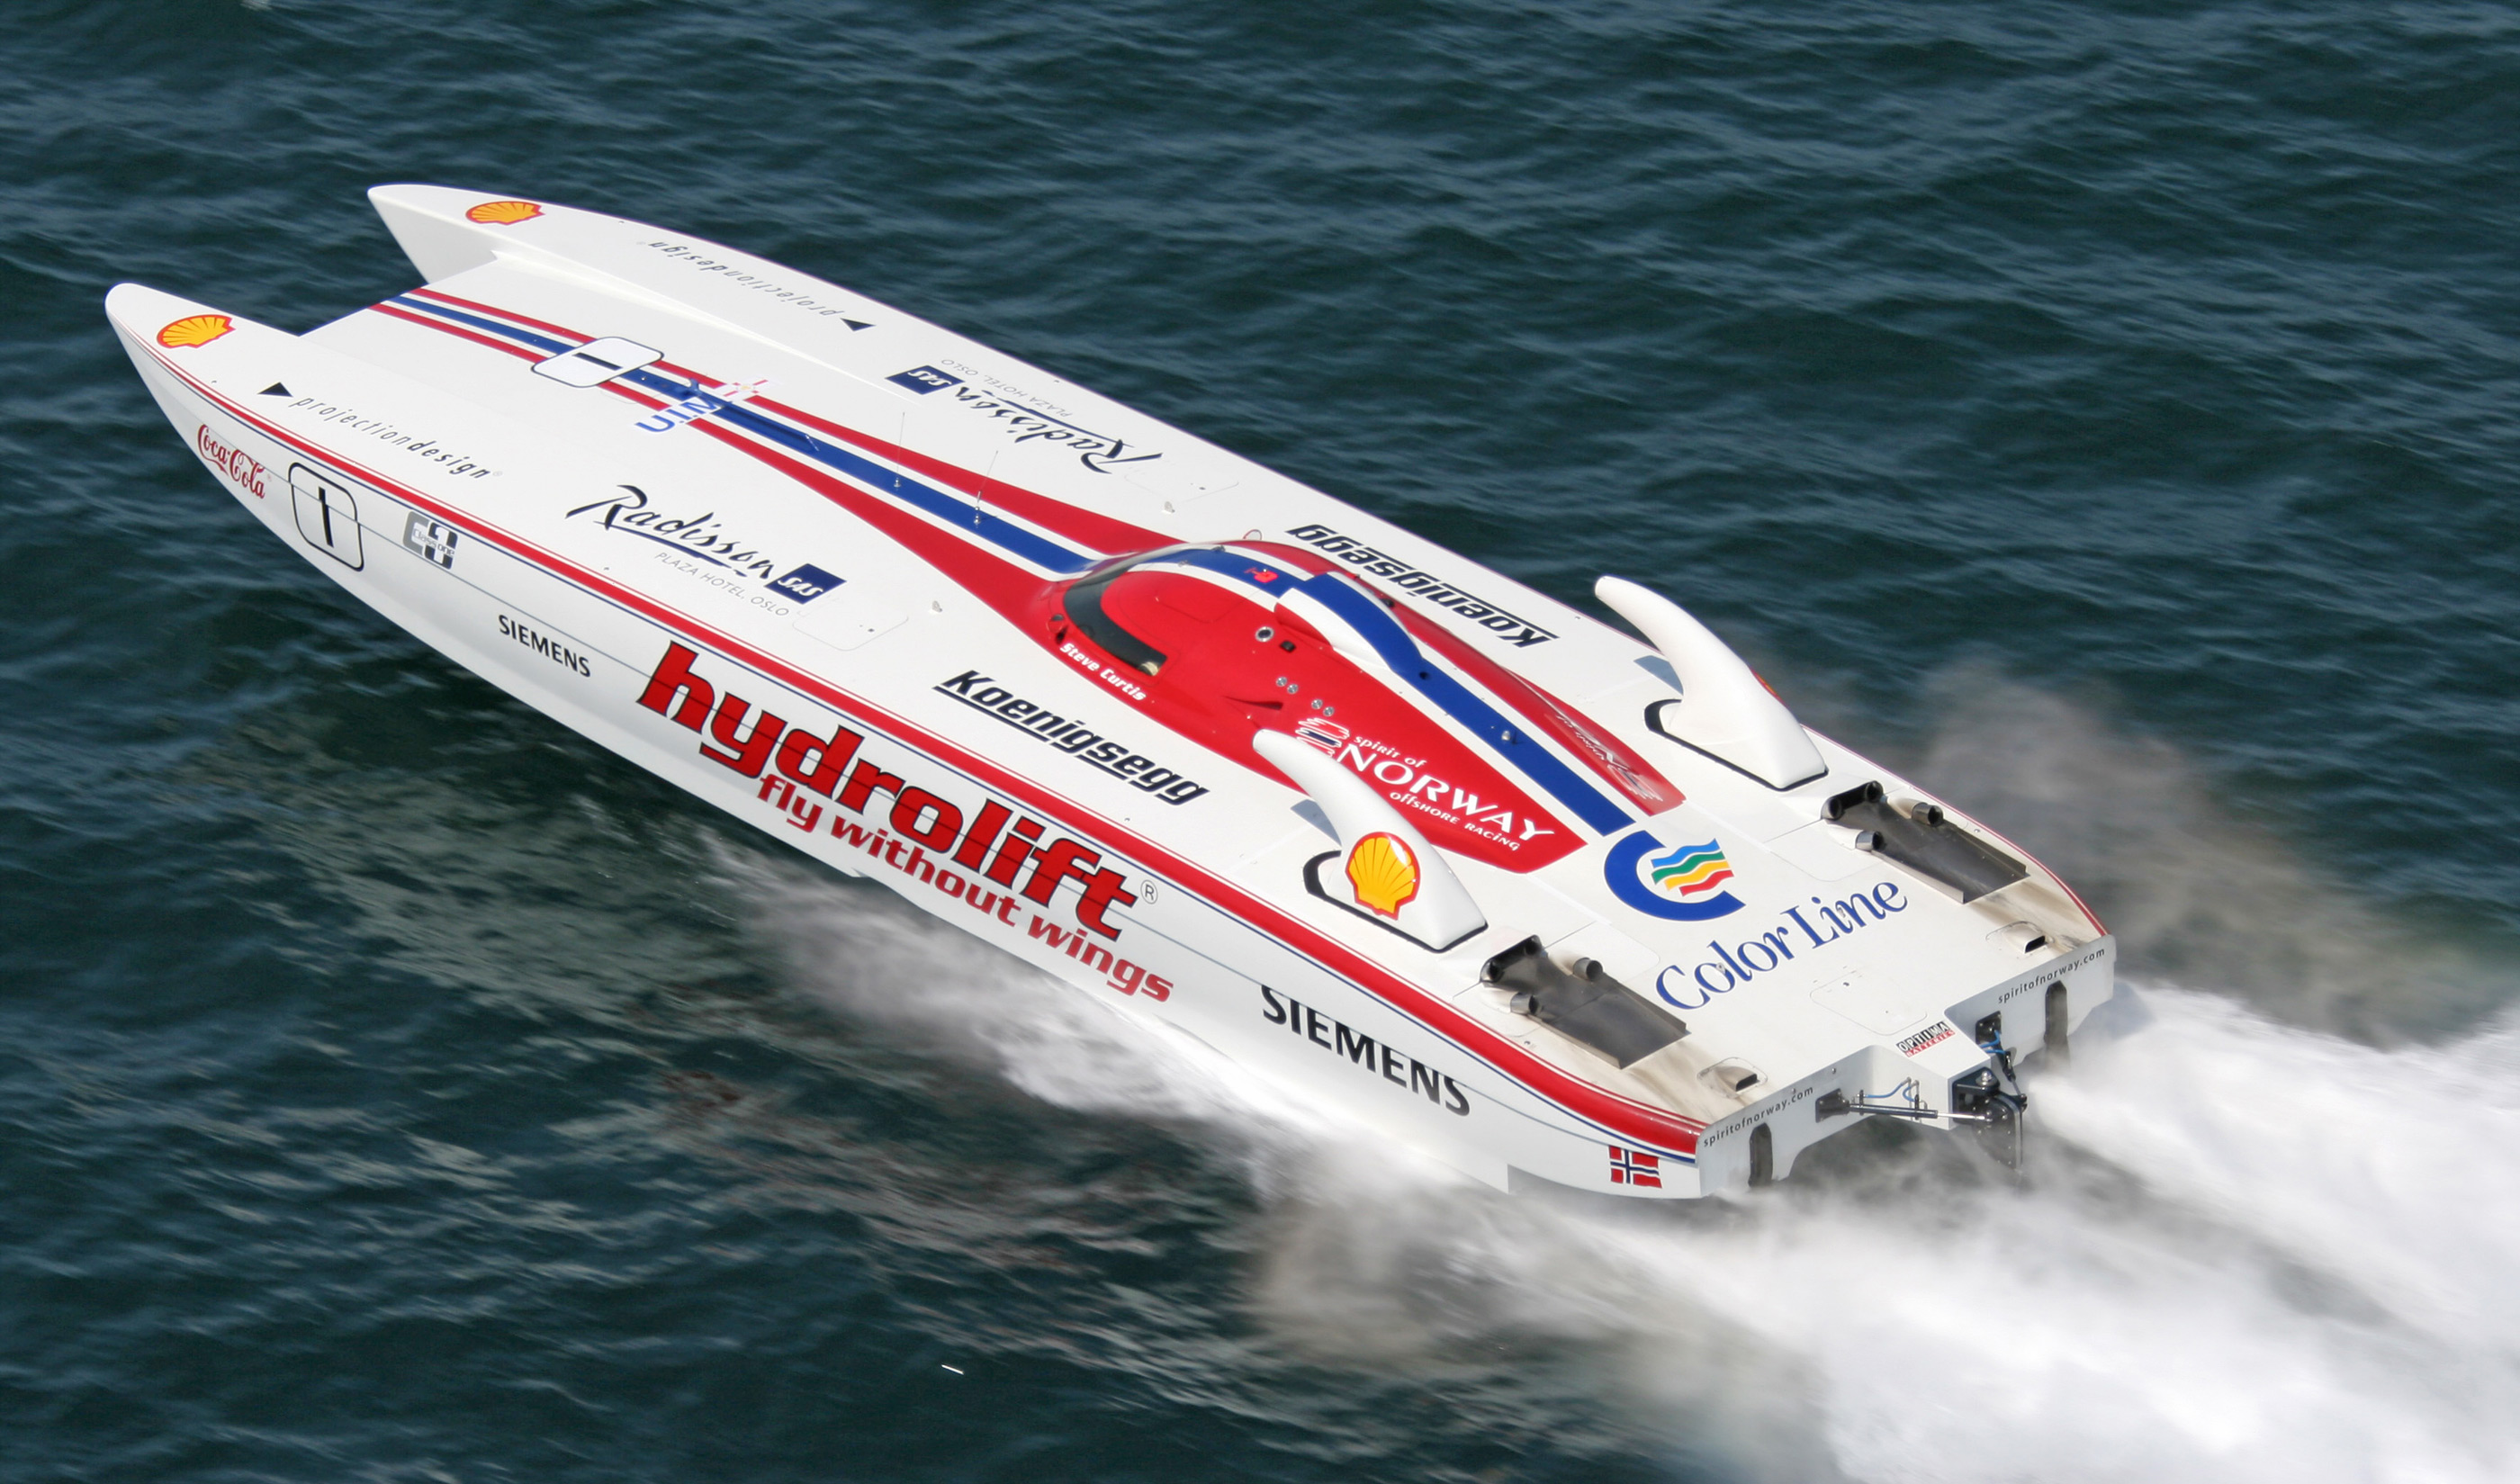 speed_boat_1.jpg